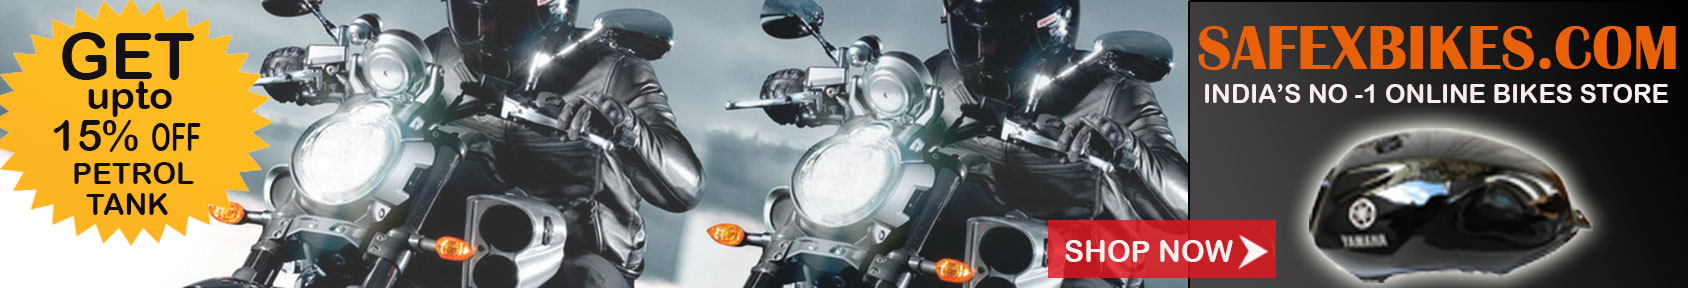 Special offers on Genuine Motorcycle Spare Parts And Accessories - Buy Petrol tank at upto 15percent discount